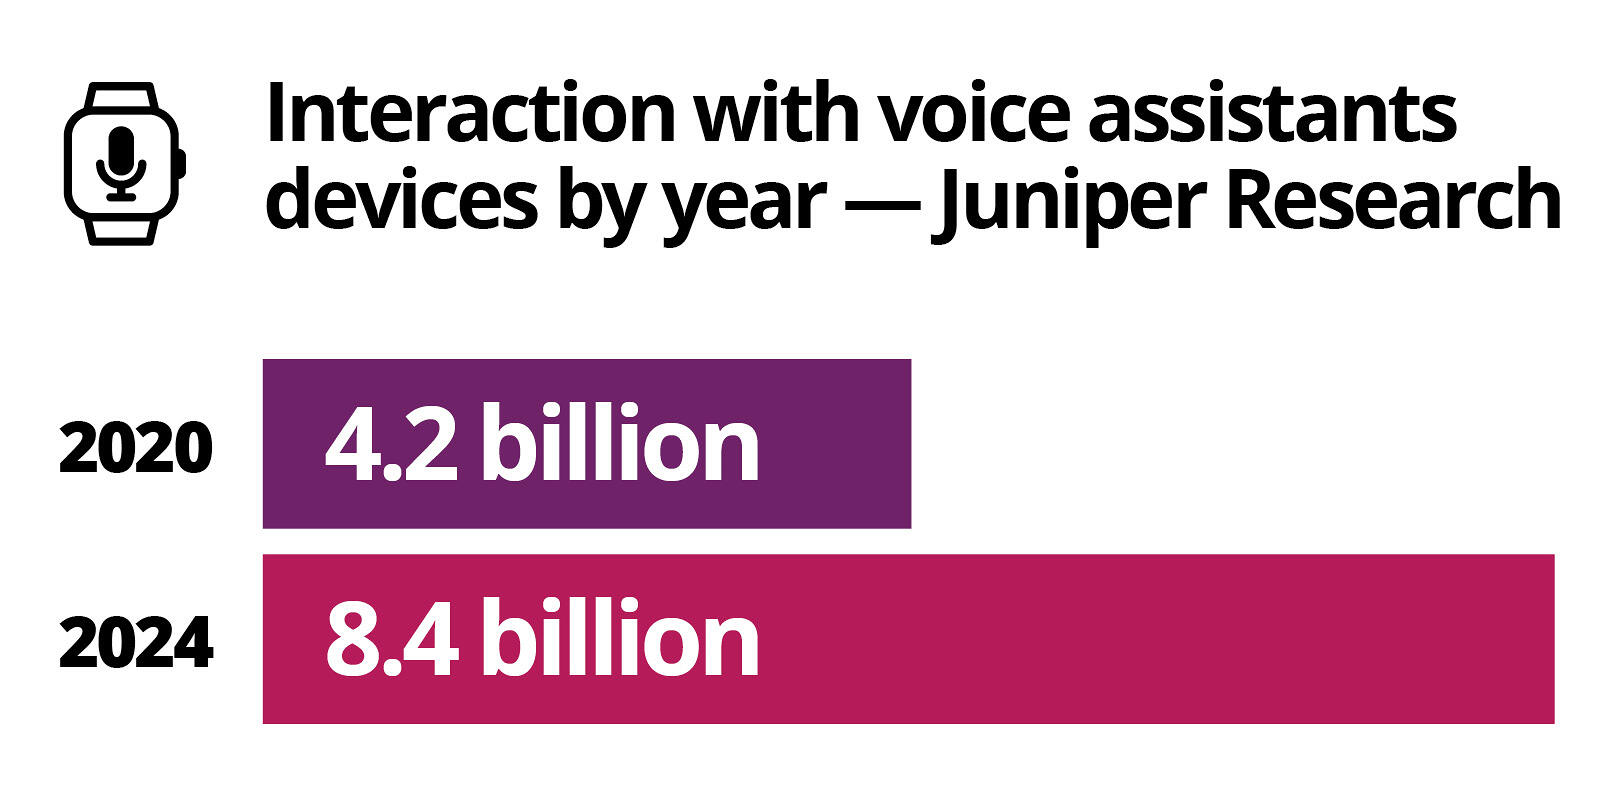 Graph: Interaction with voice assistant devices by year – Juniper Research: 2020 – 4.2 billion, 2024 – 8.4 billion